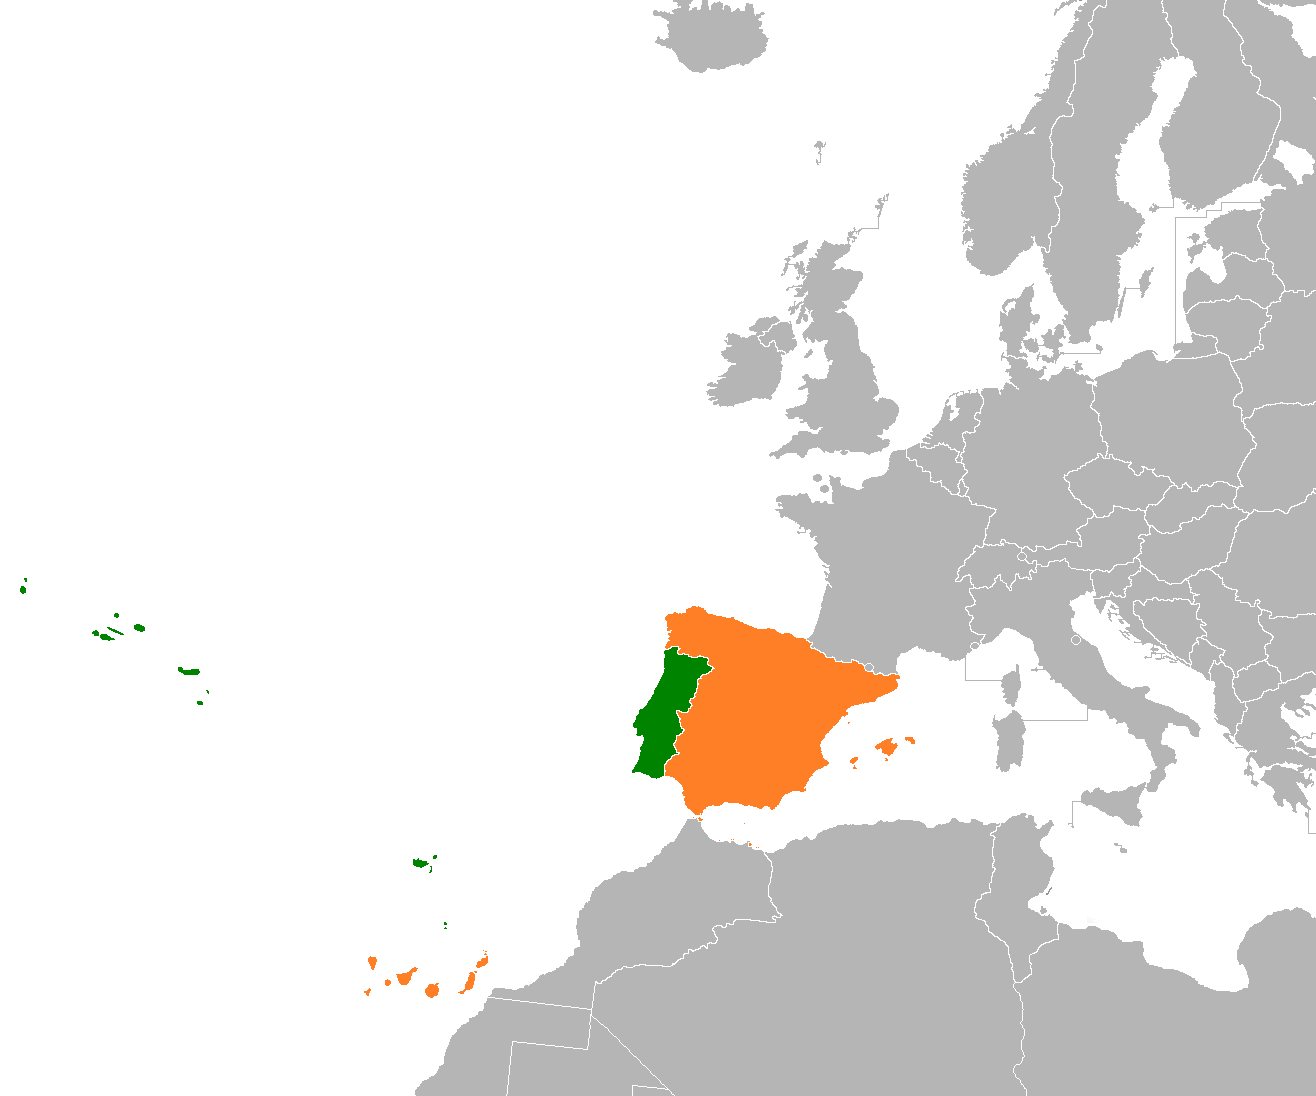 Spain On Map Of World.Portugal Spain Relations Wikipedia